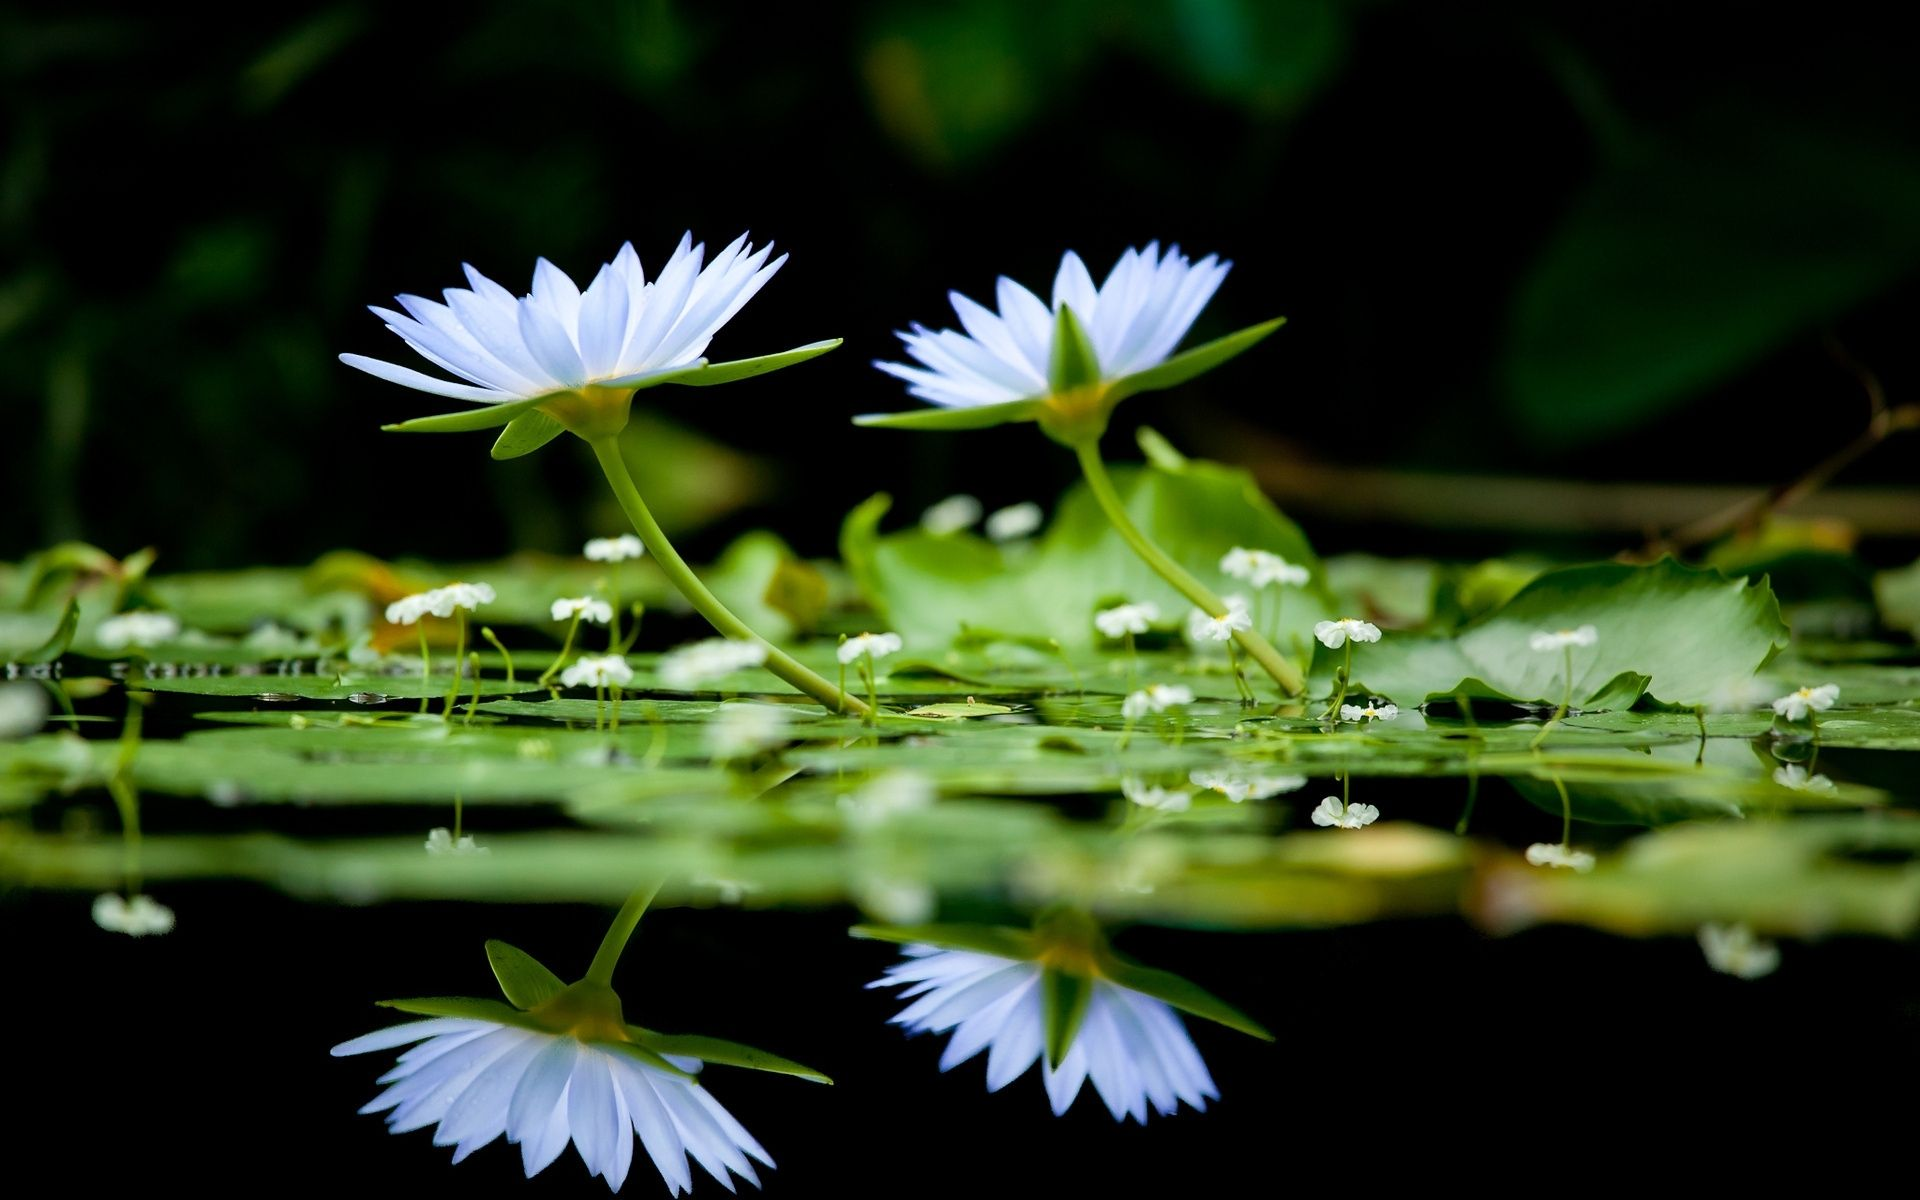 White Flowers On Water #6965806